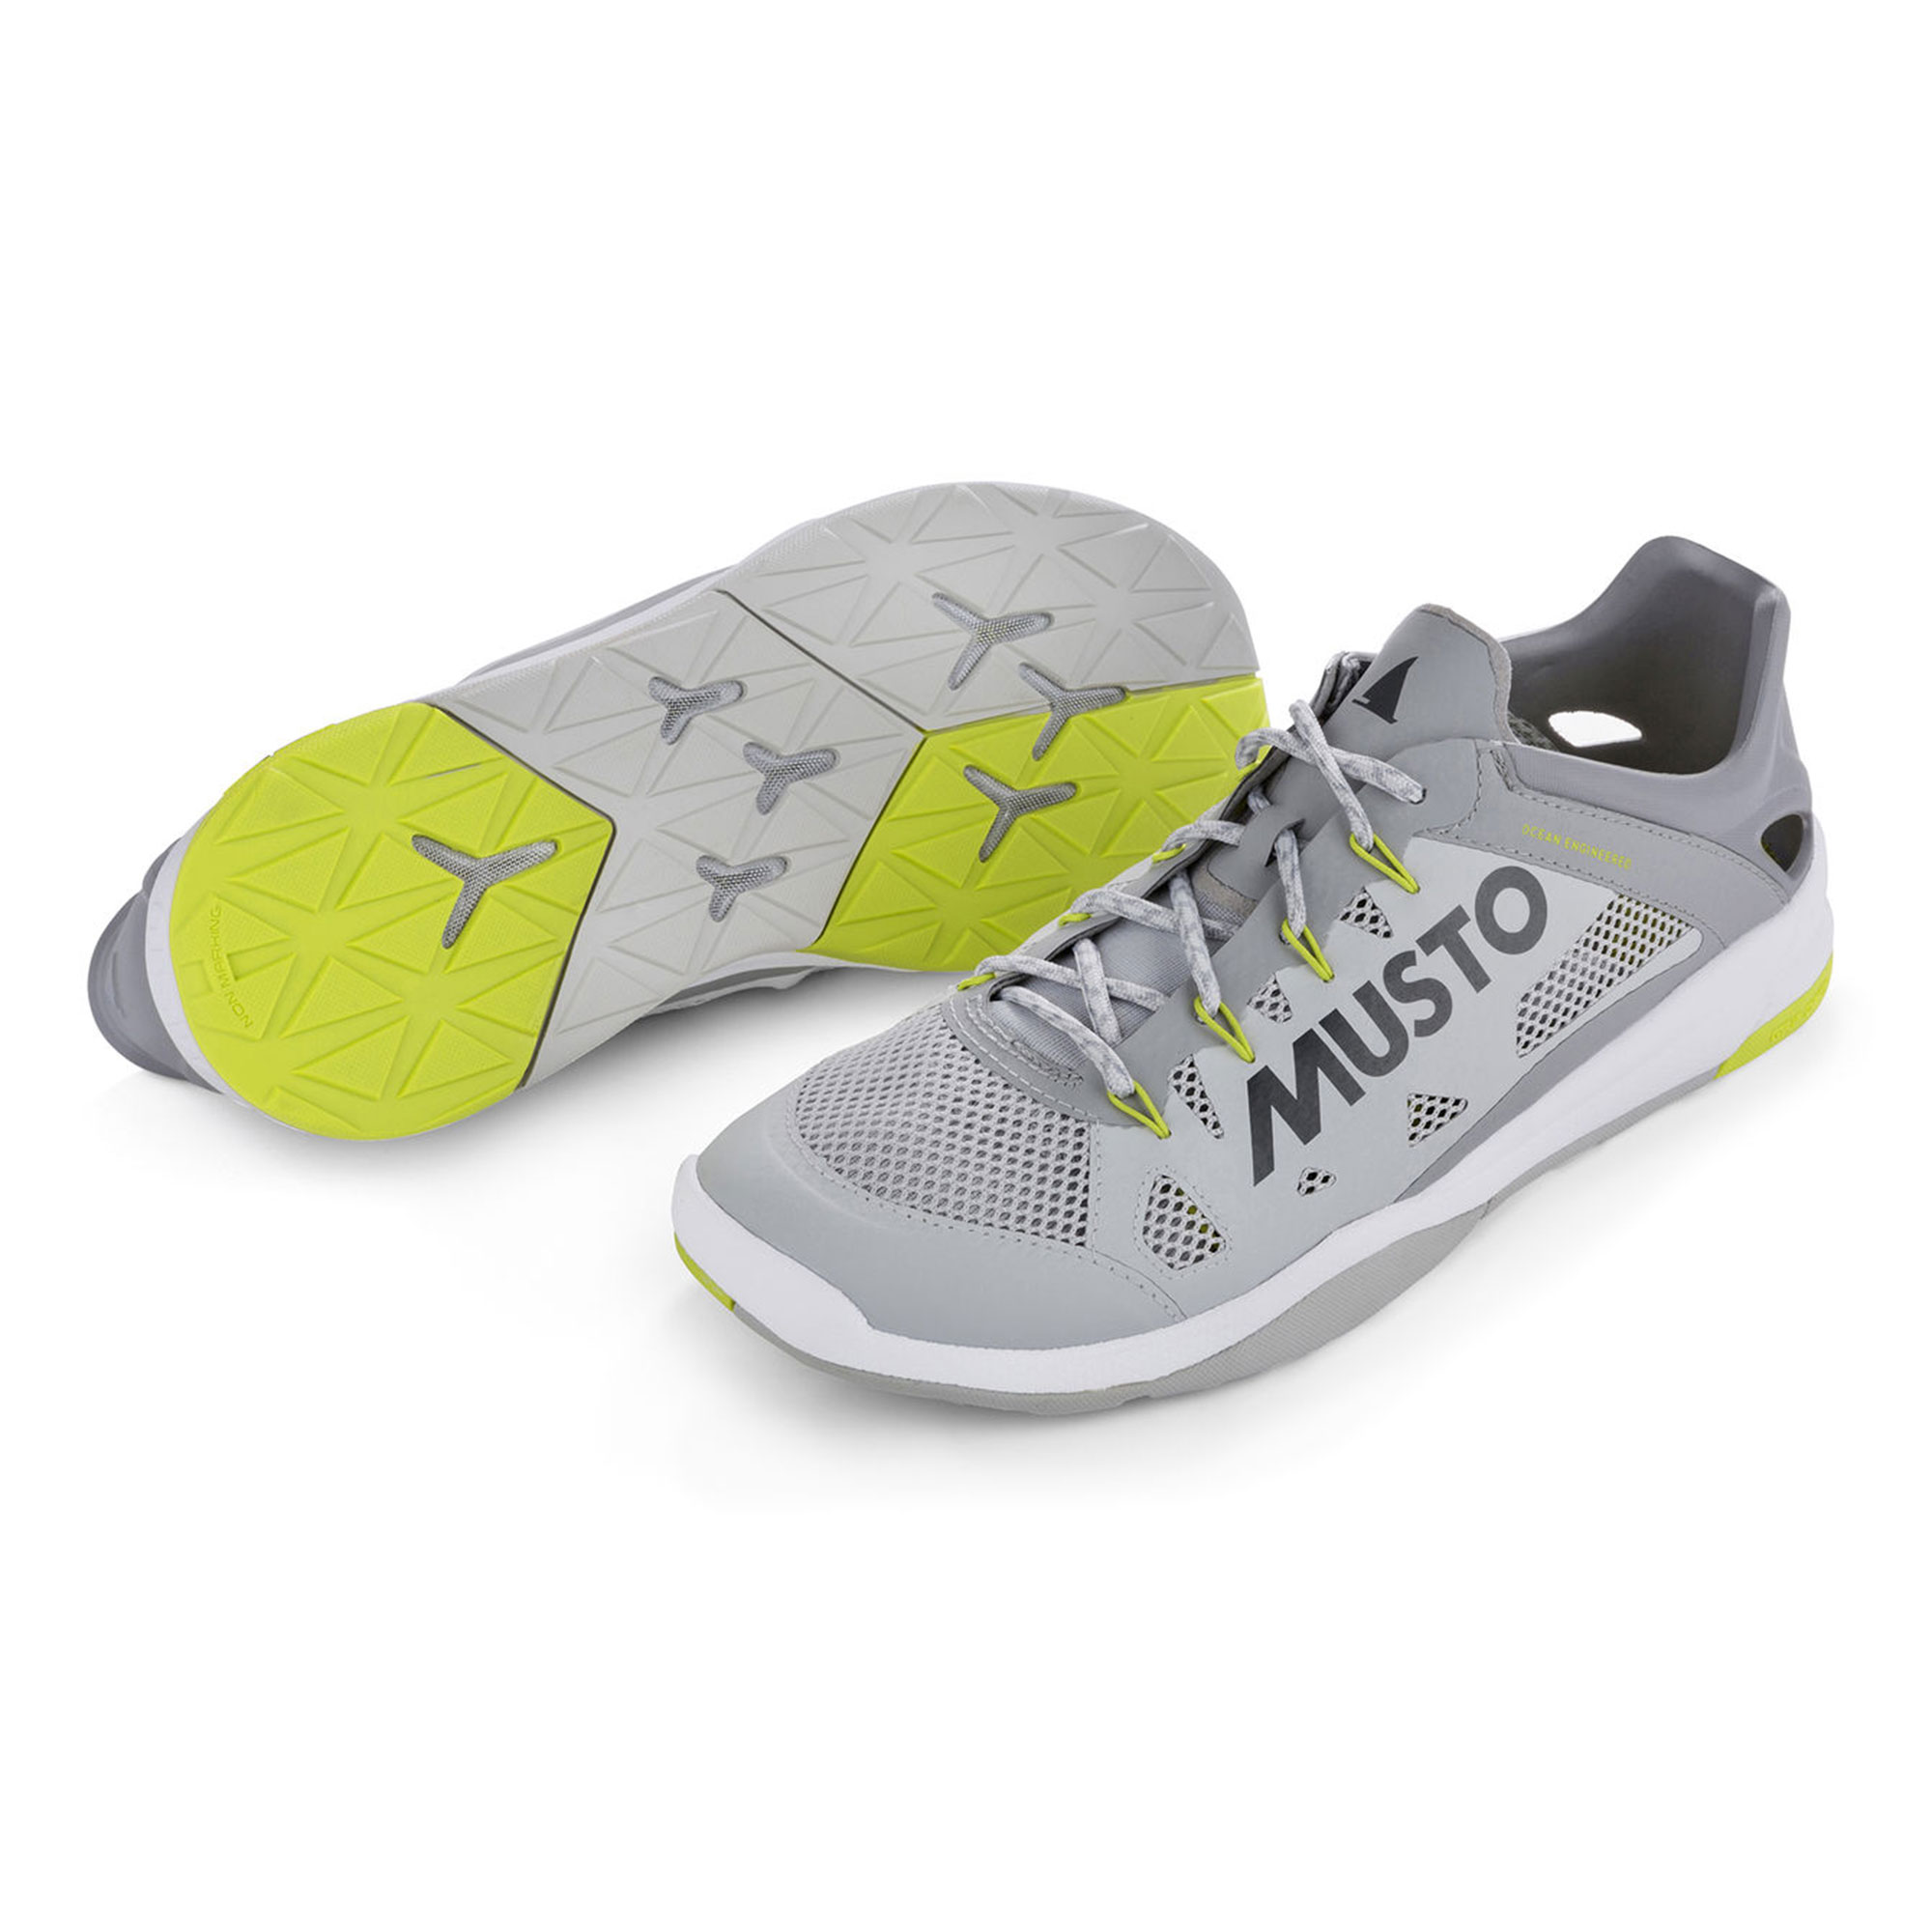 Musto Dynamic Pro Ii Shoe 2018 Platinum Coast Water Sports